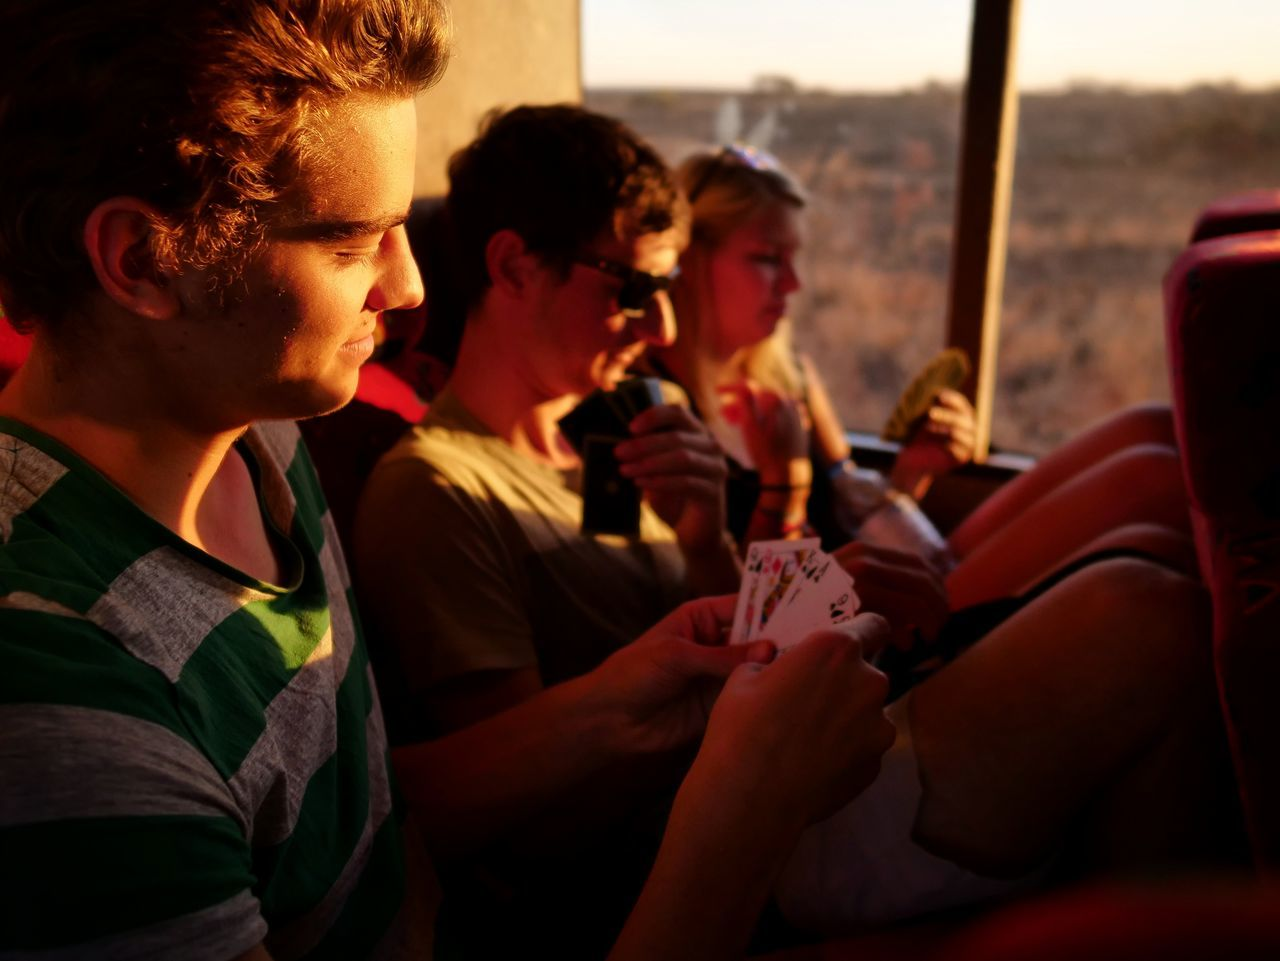 People playing cards while sitting in bus